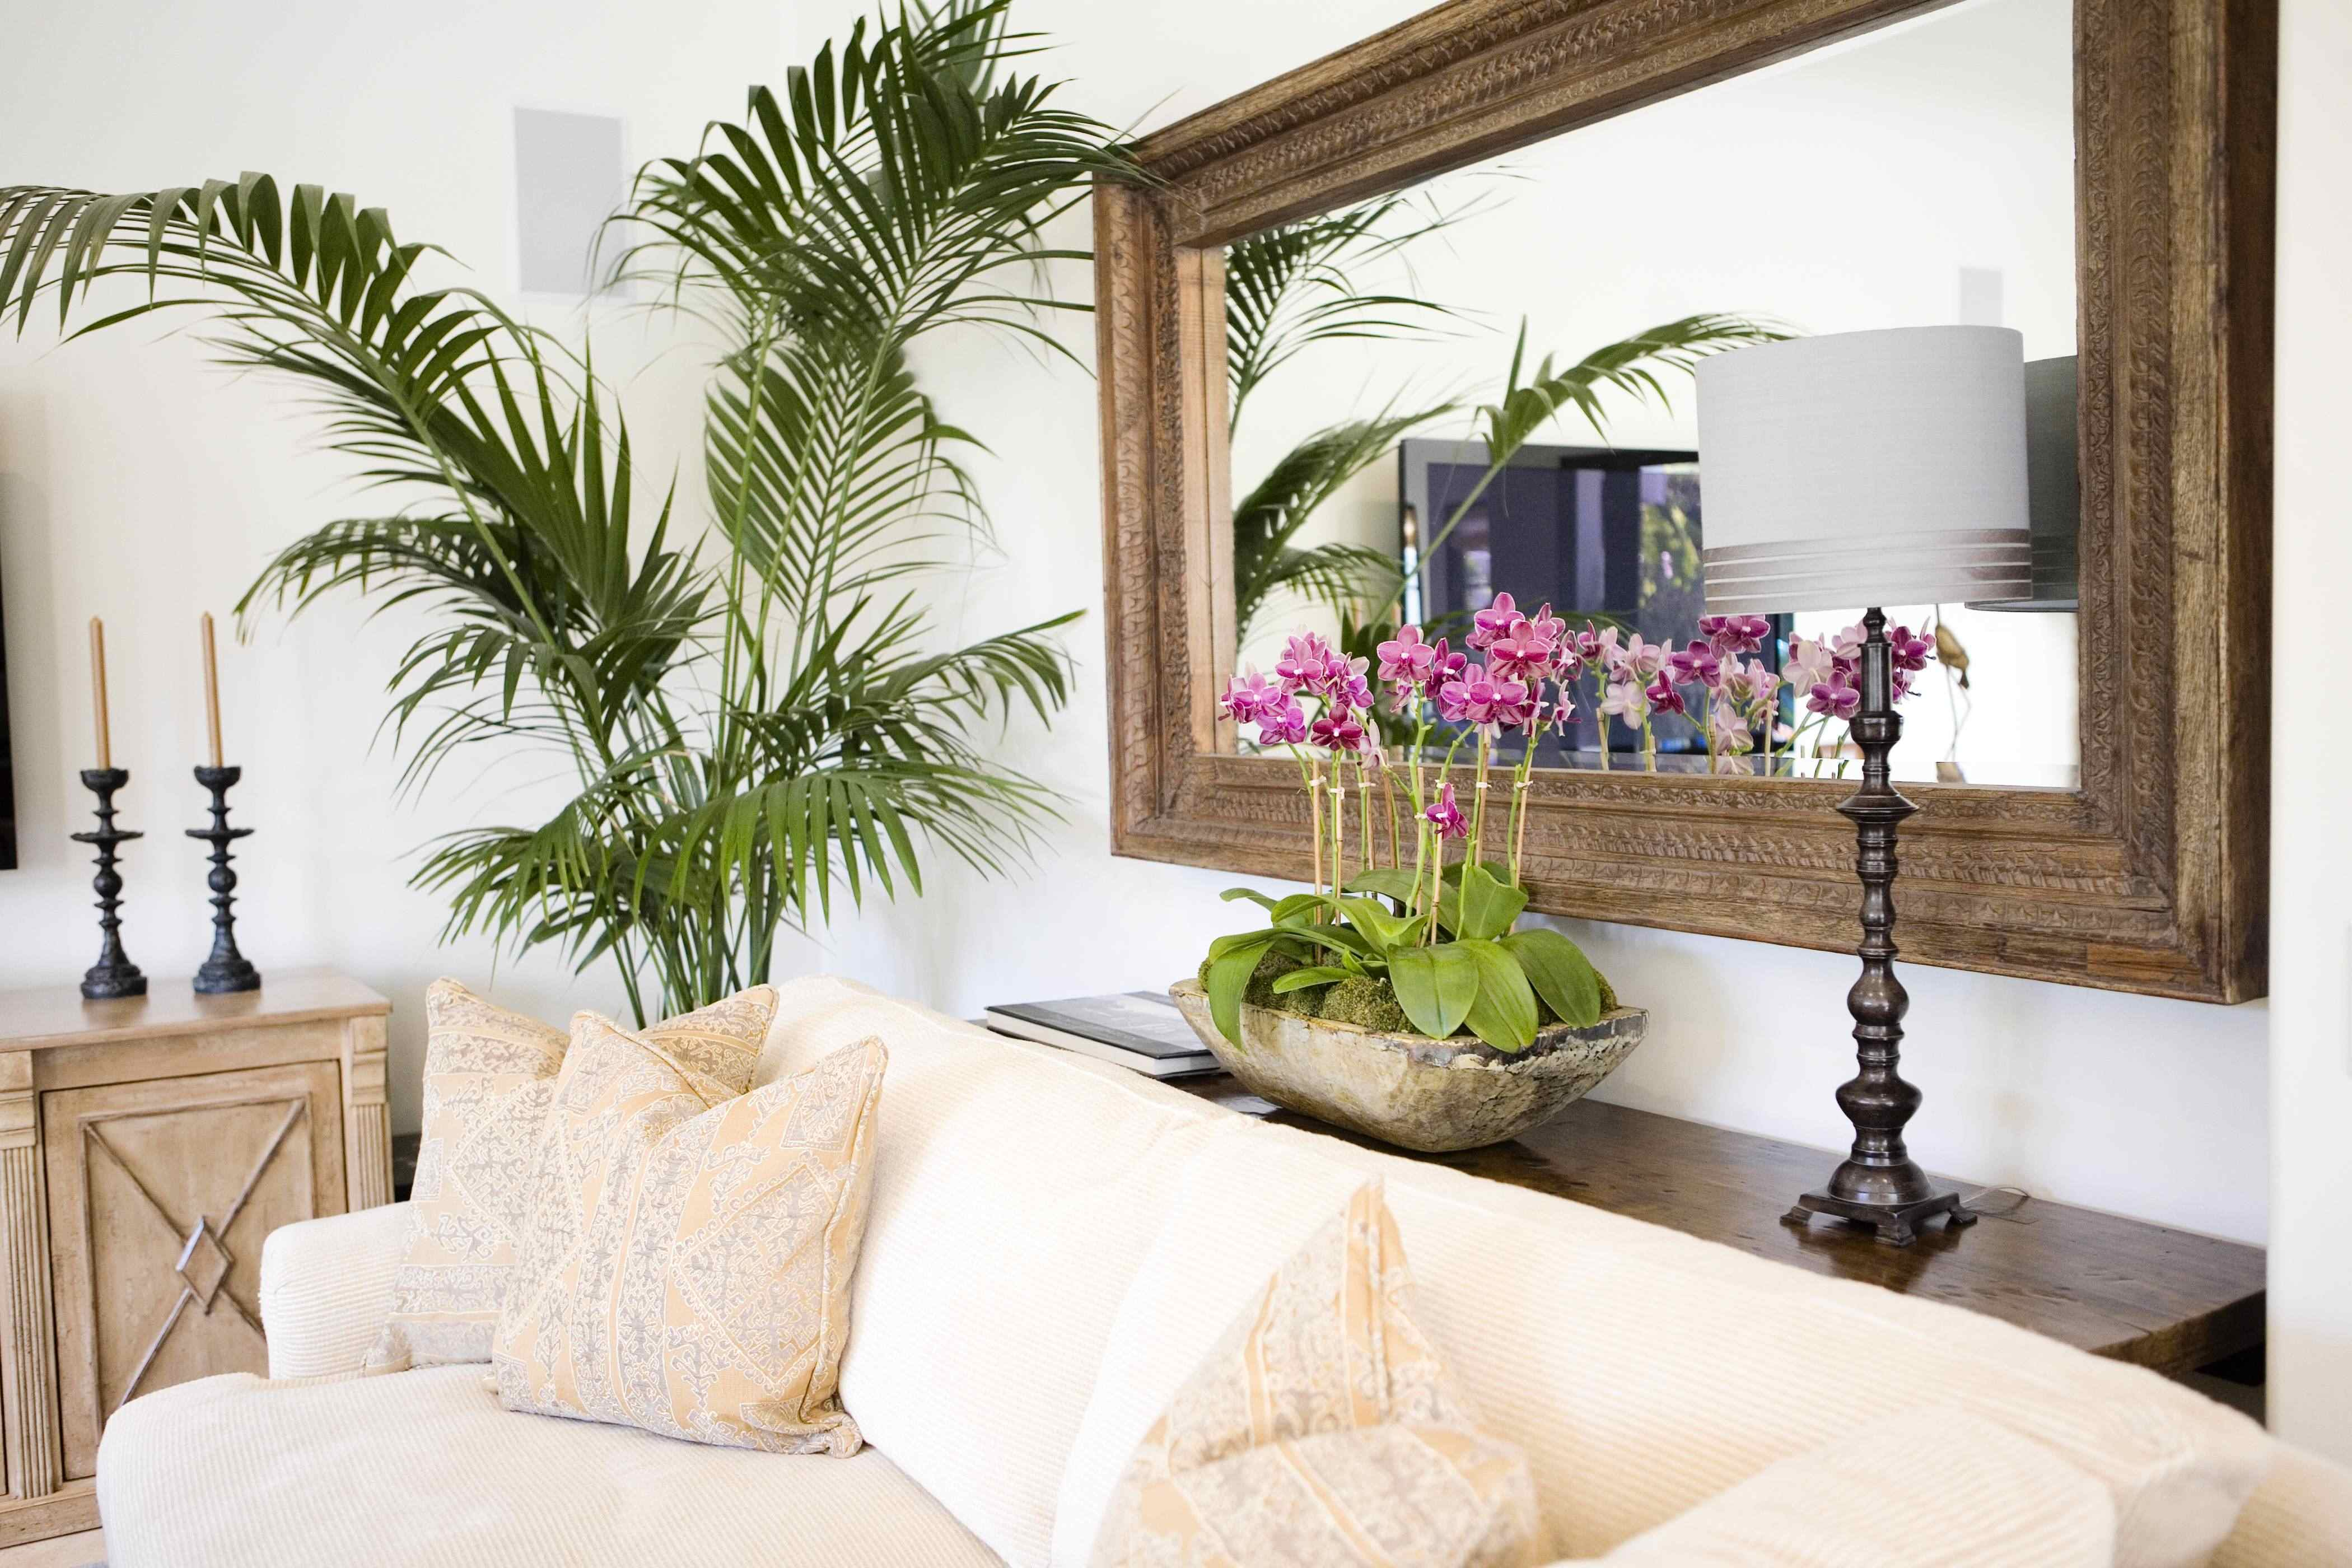 Turn Of The Century Havana Mirror and Tropical Foliage